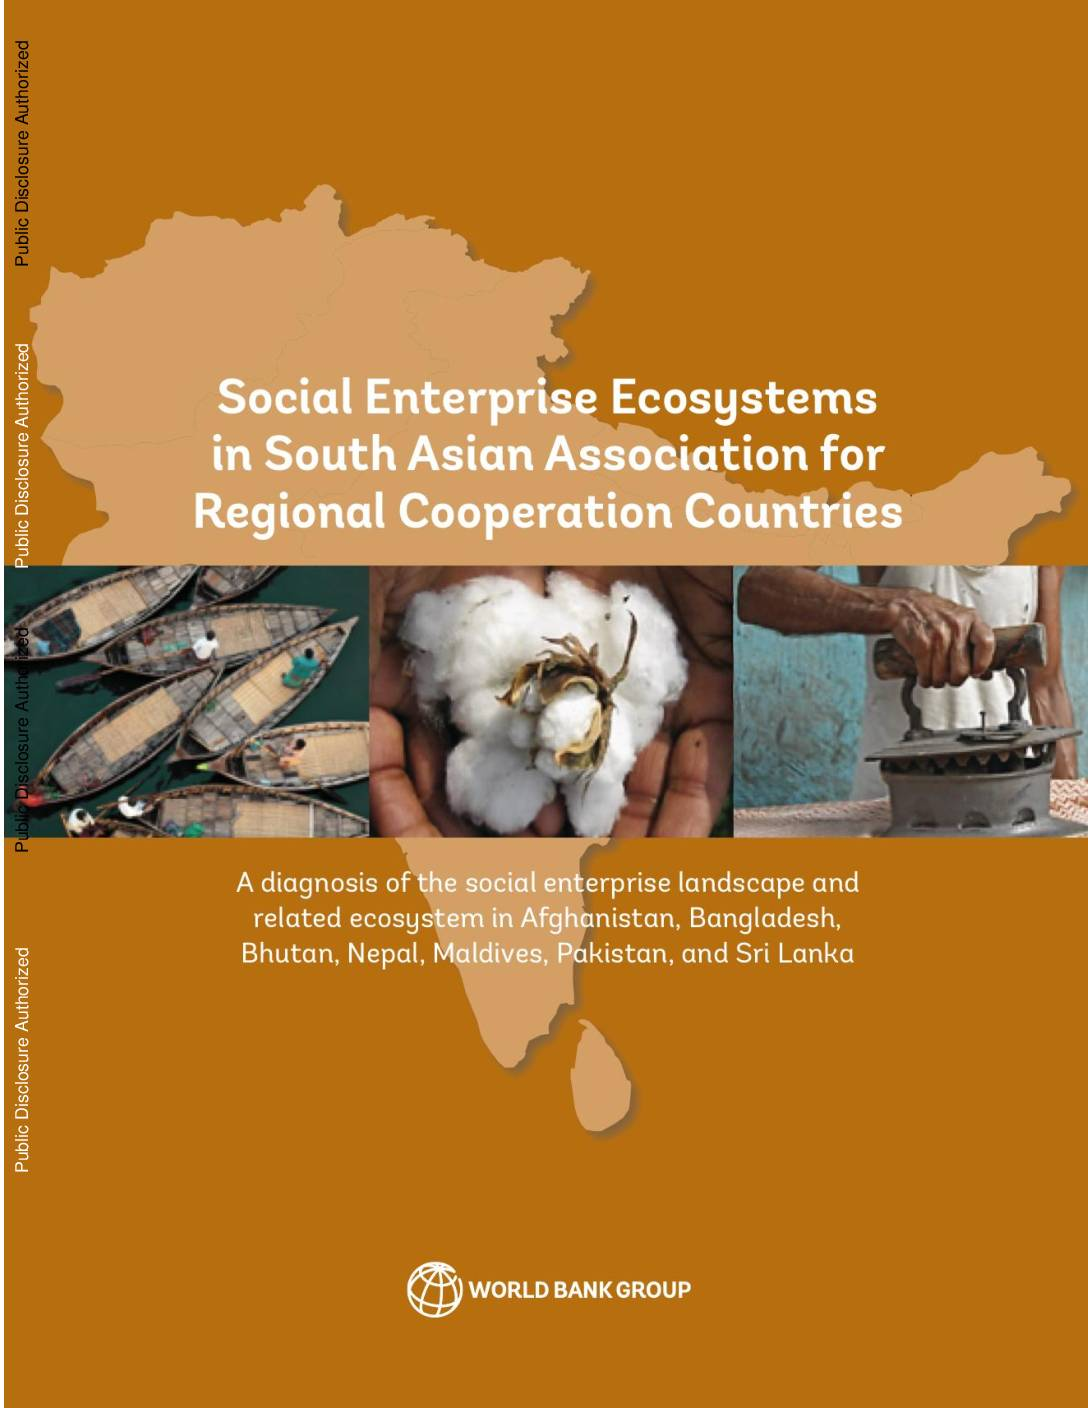 Social Enterprise Eco-systems in South Asian Association for Regional Co-operation Countries